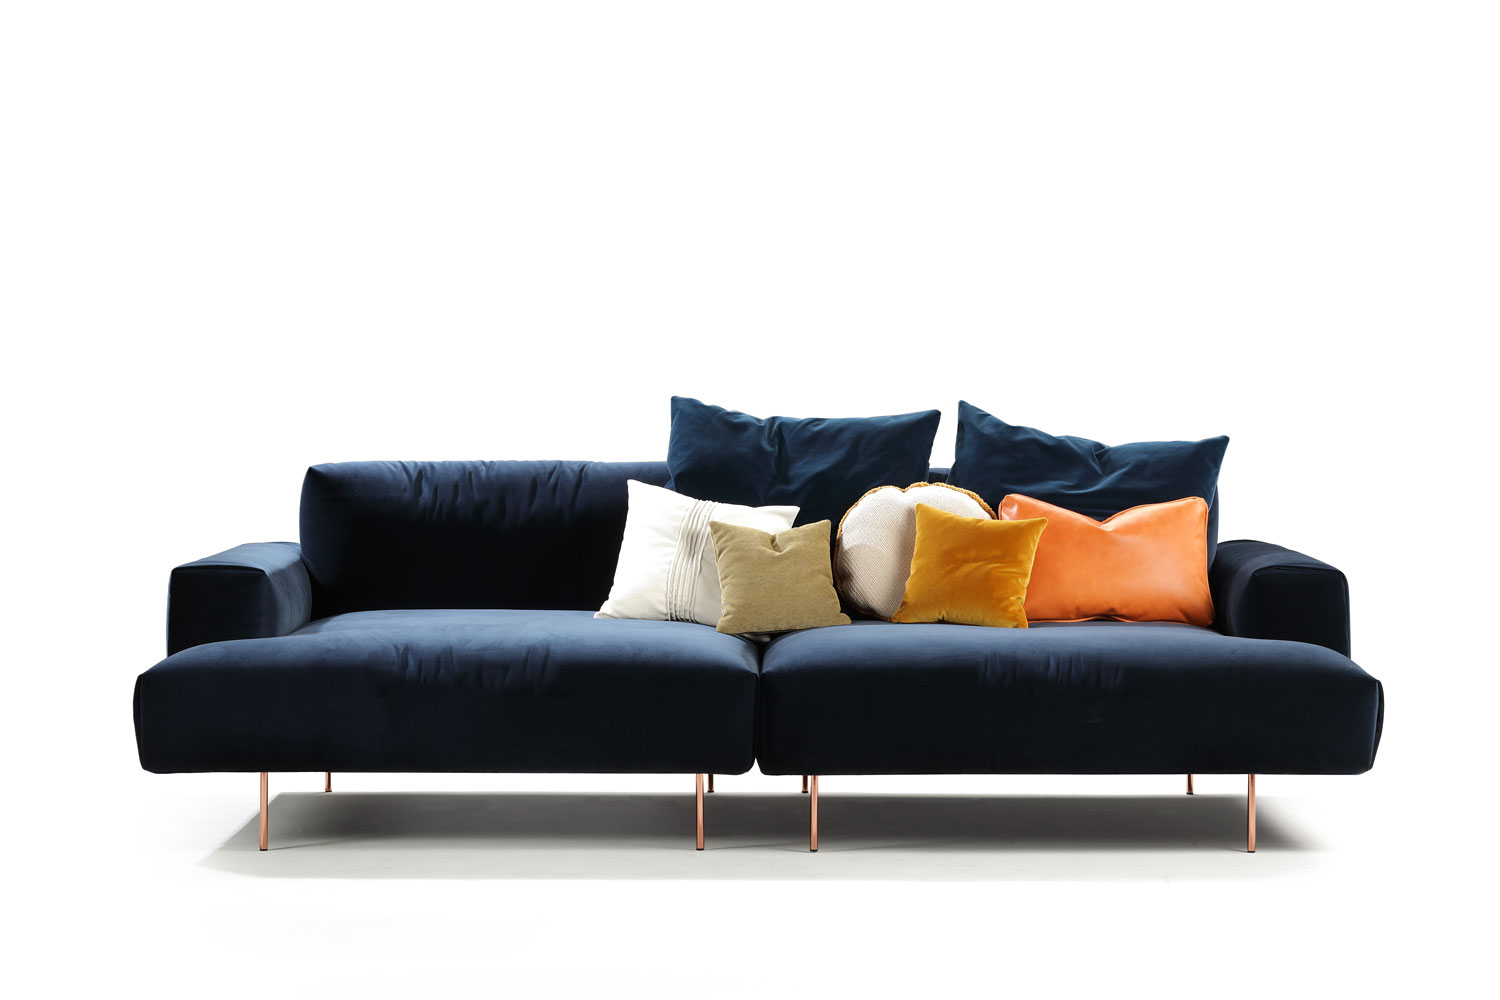 Sancal Tip Toe Sofa - Best of Salone Del Mobile 2015   Yellowtrace